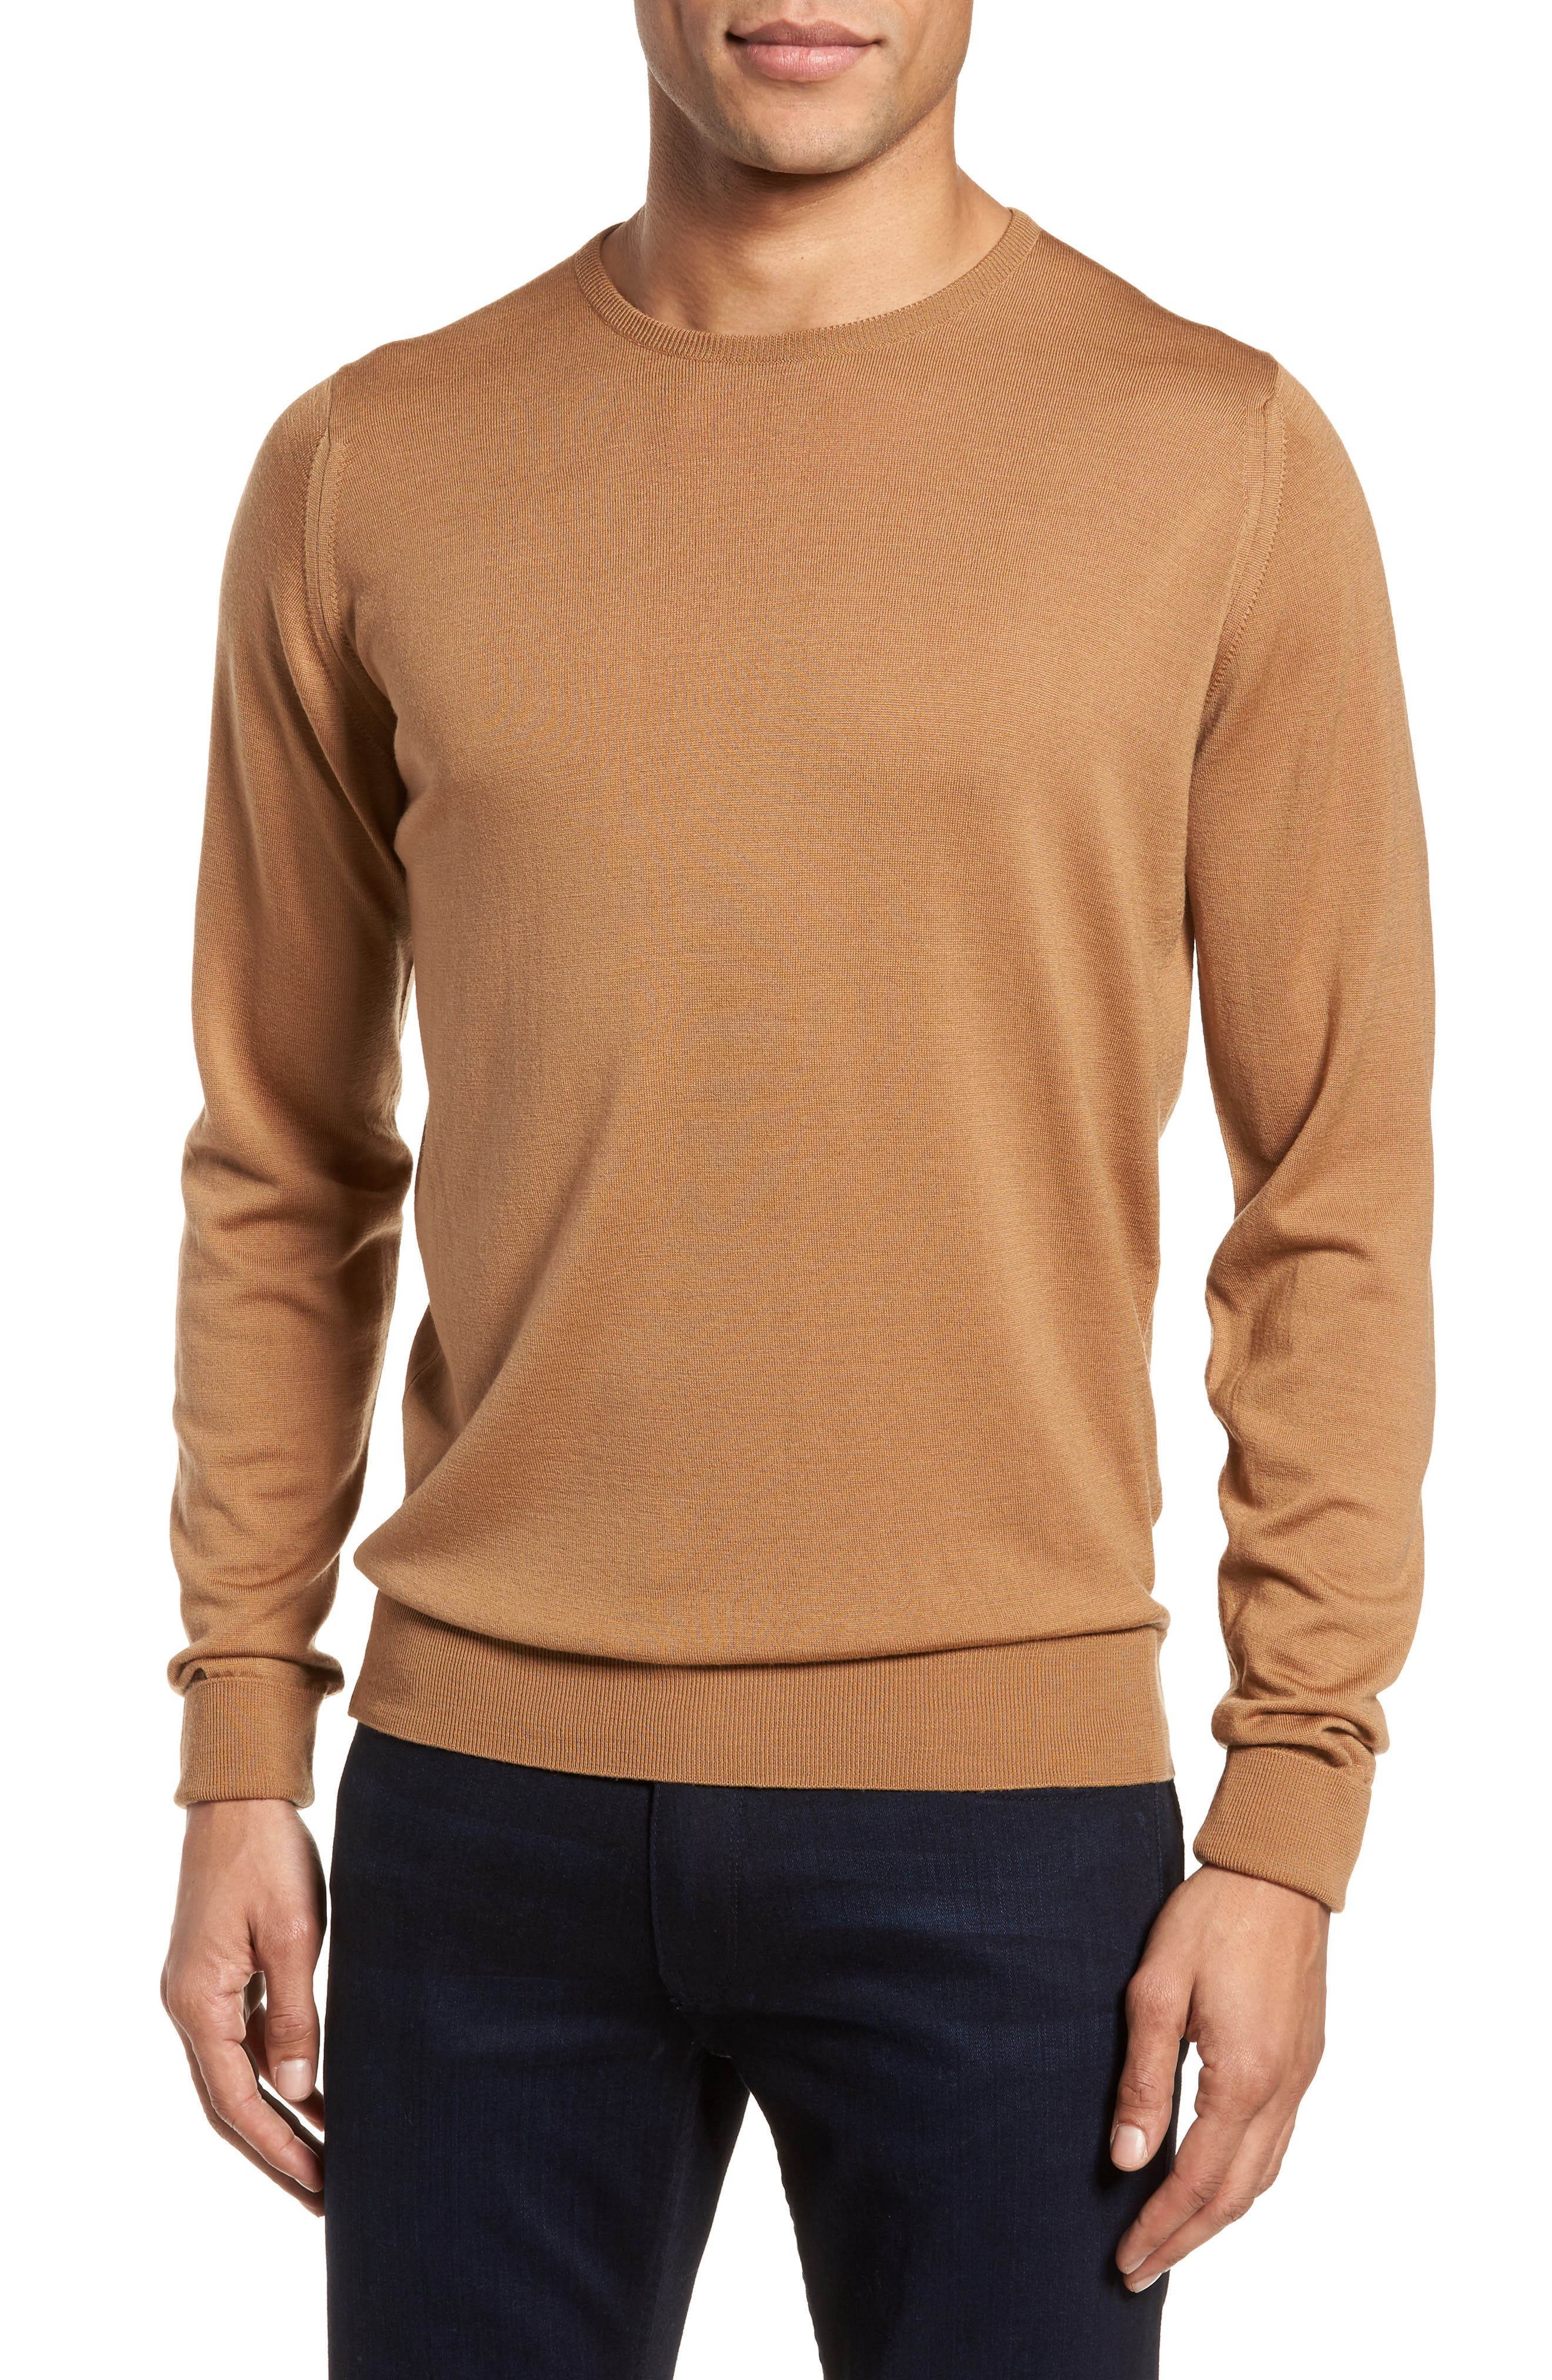 'Marcus' Easy Fit Crewneck Wool Sweater,                             Main thumbnail 1, color,                             Camel